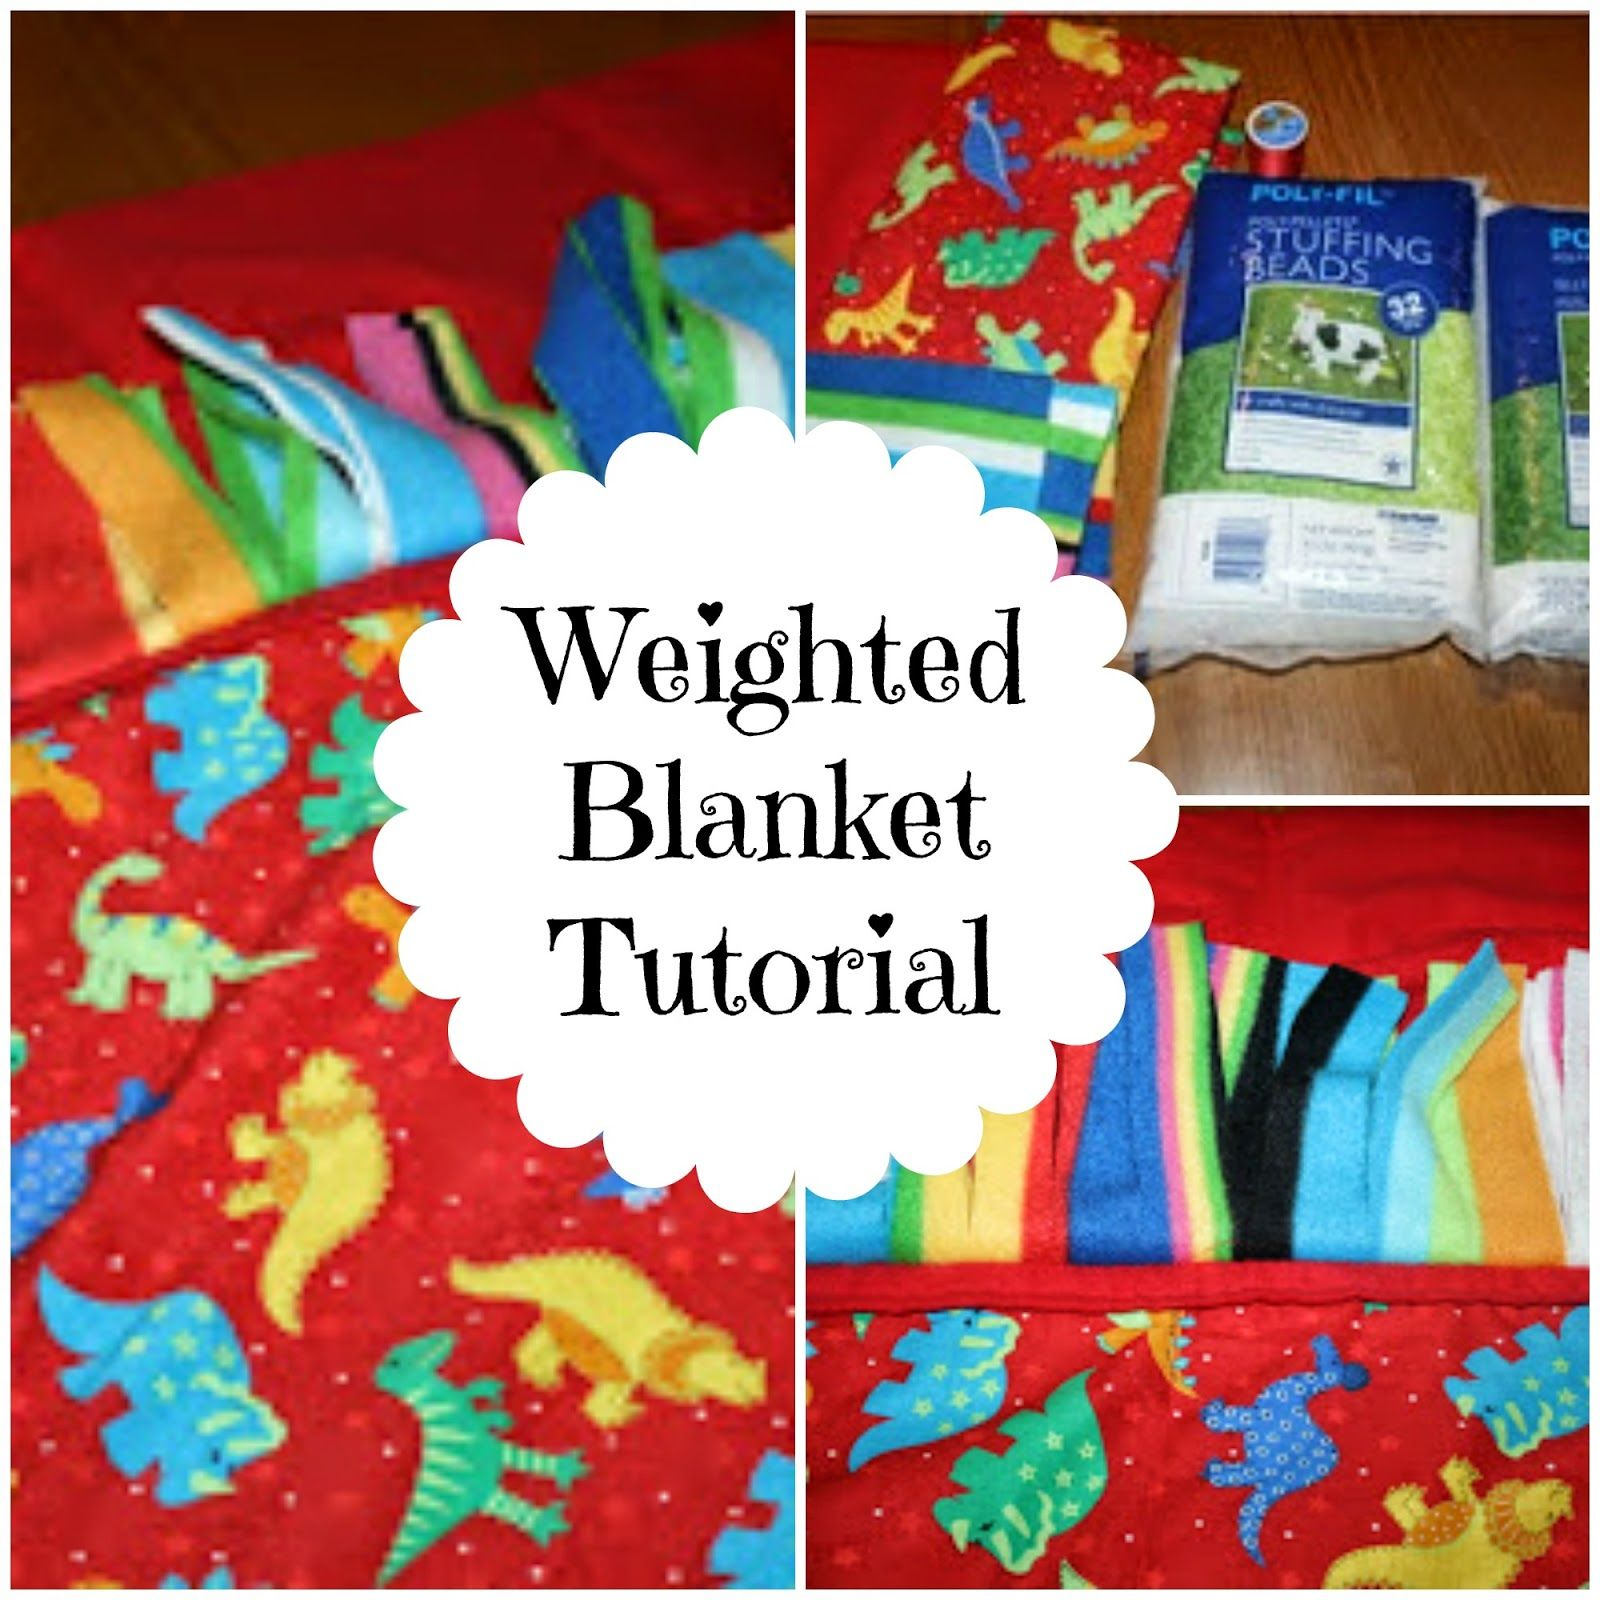 Weighted Blanked Tutorial Autism SPD Sensoryprocessing